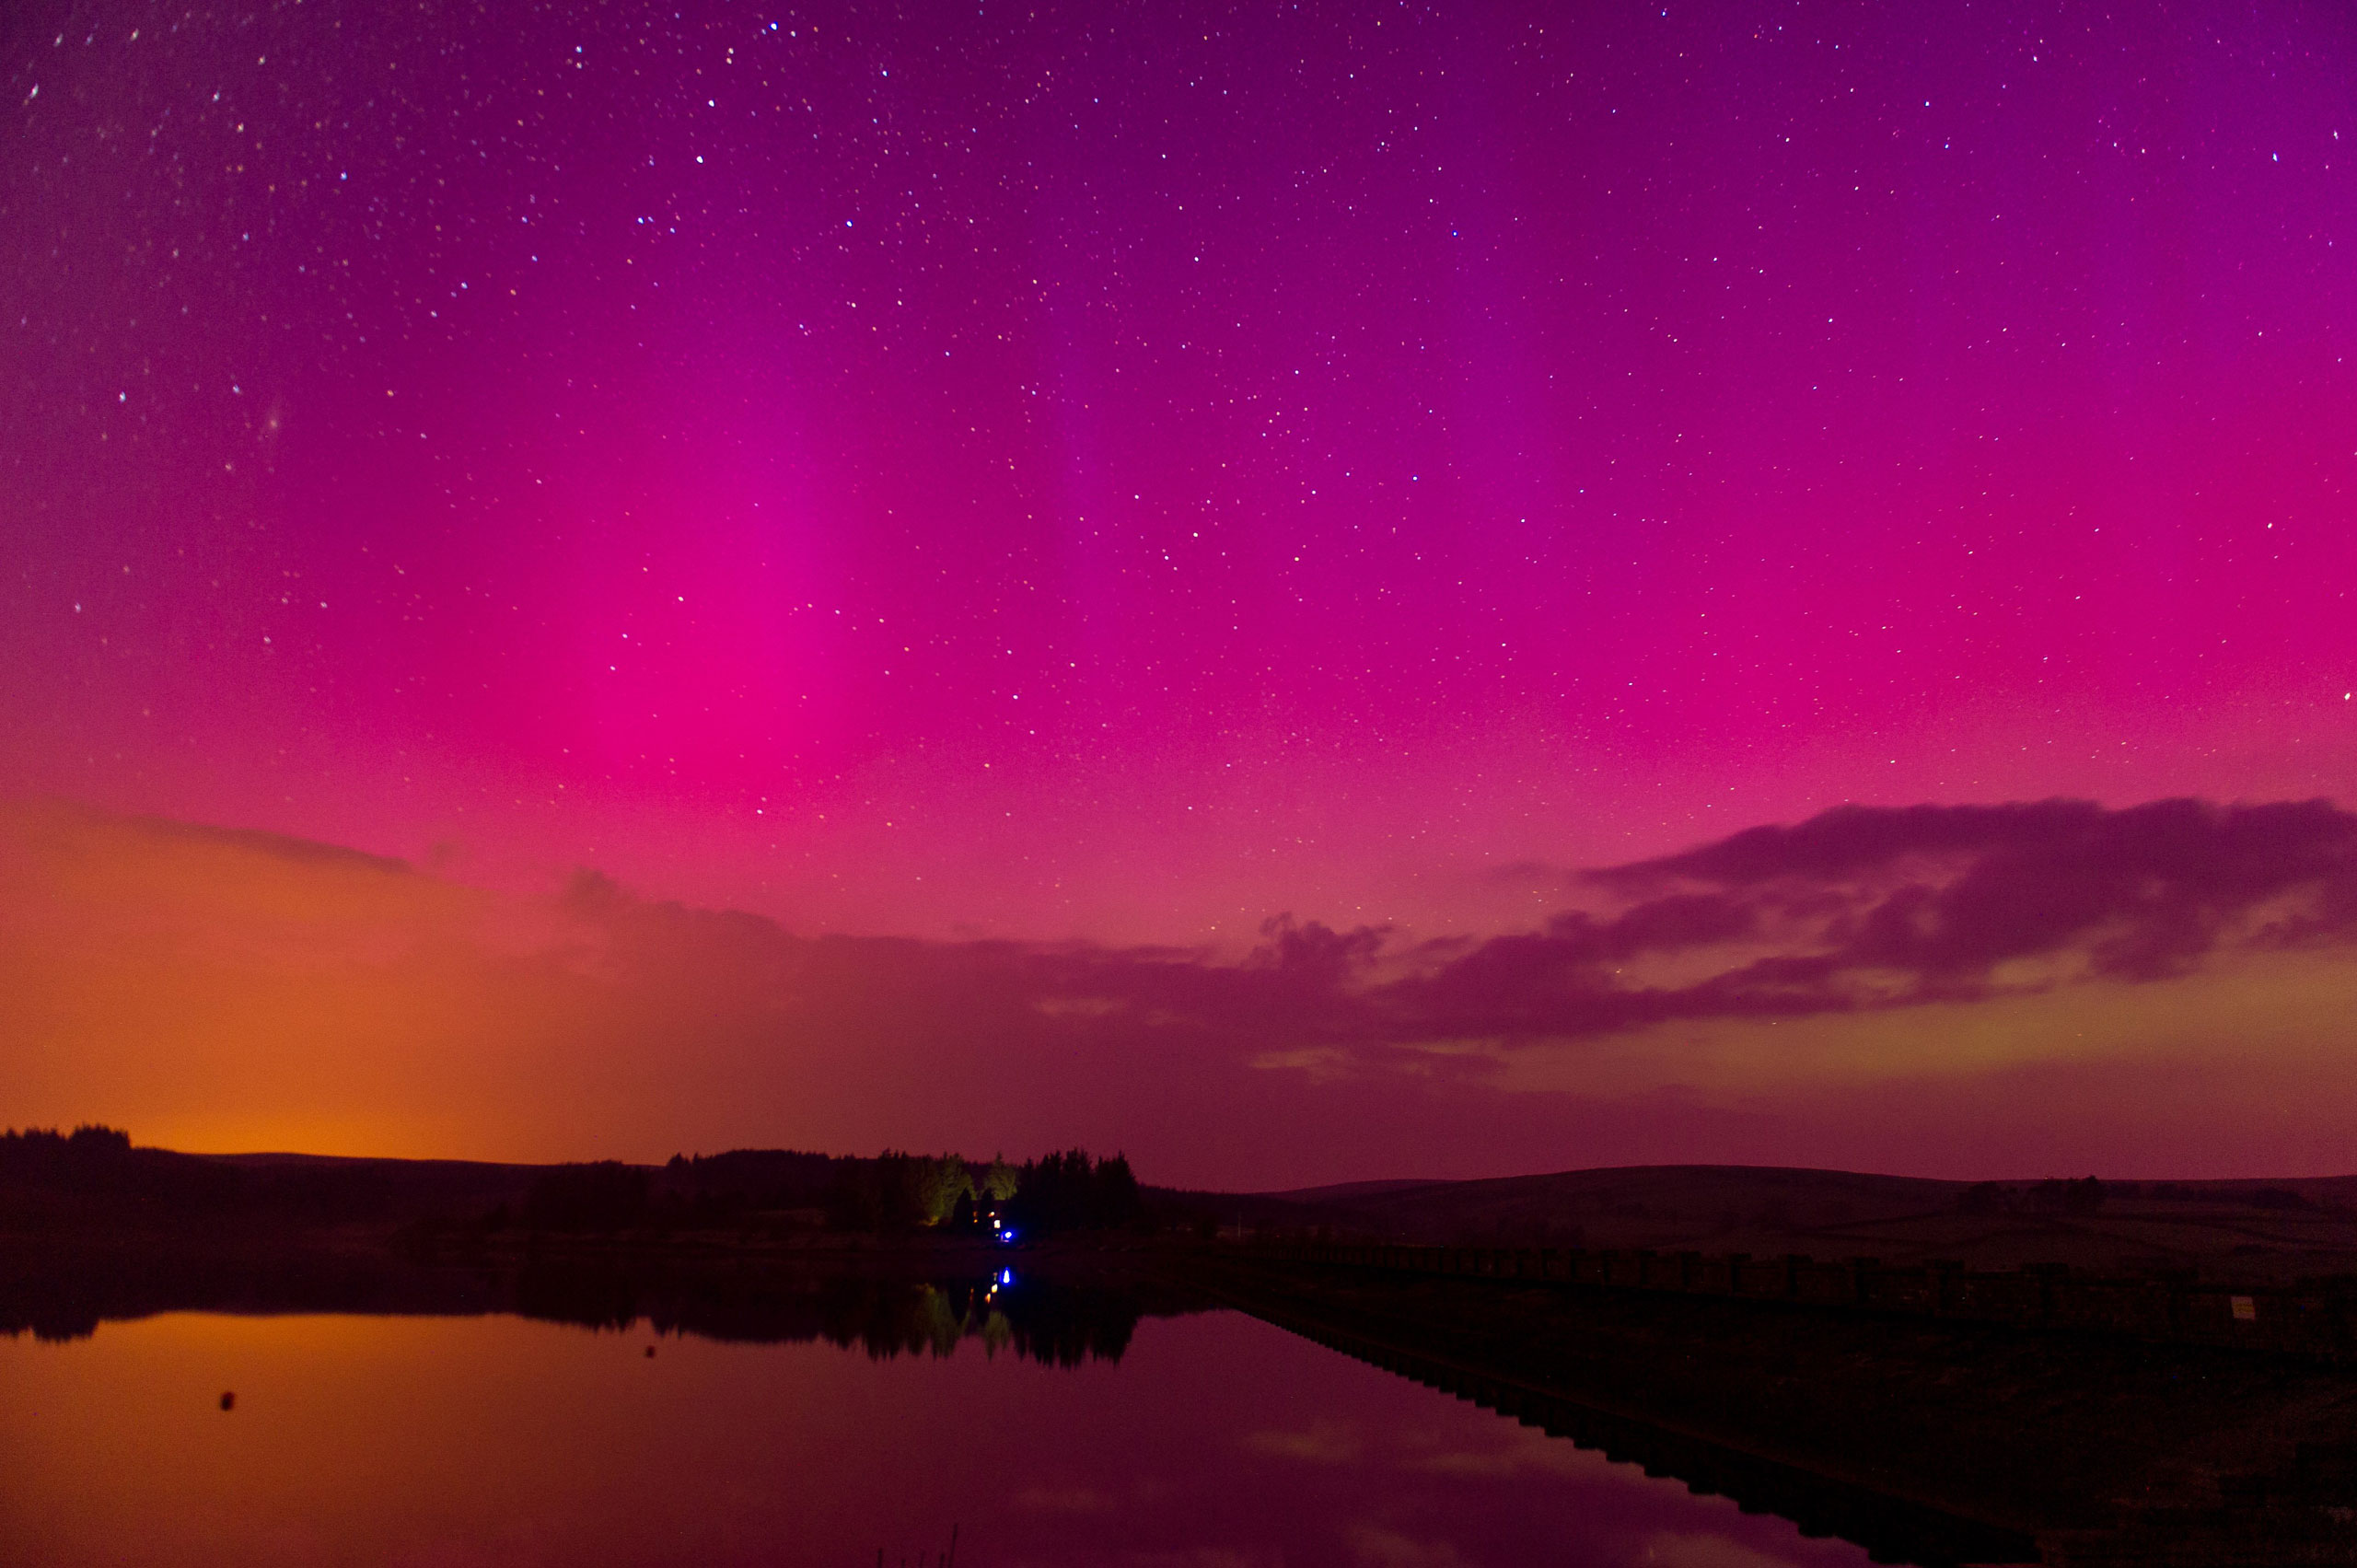 The Northern Lights are seen over Usk Reservoir at the Brecon Beacons, Wales, on March 17, 2015.